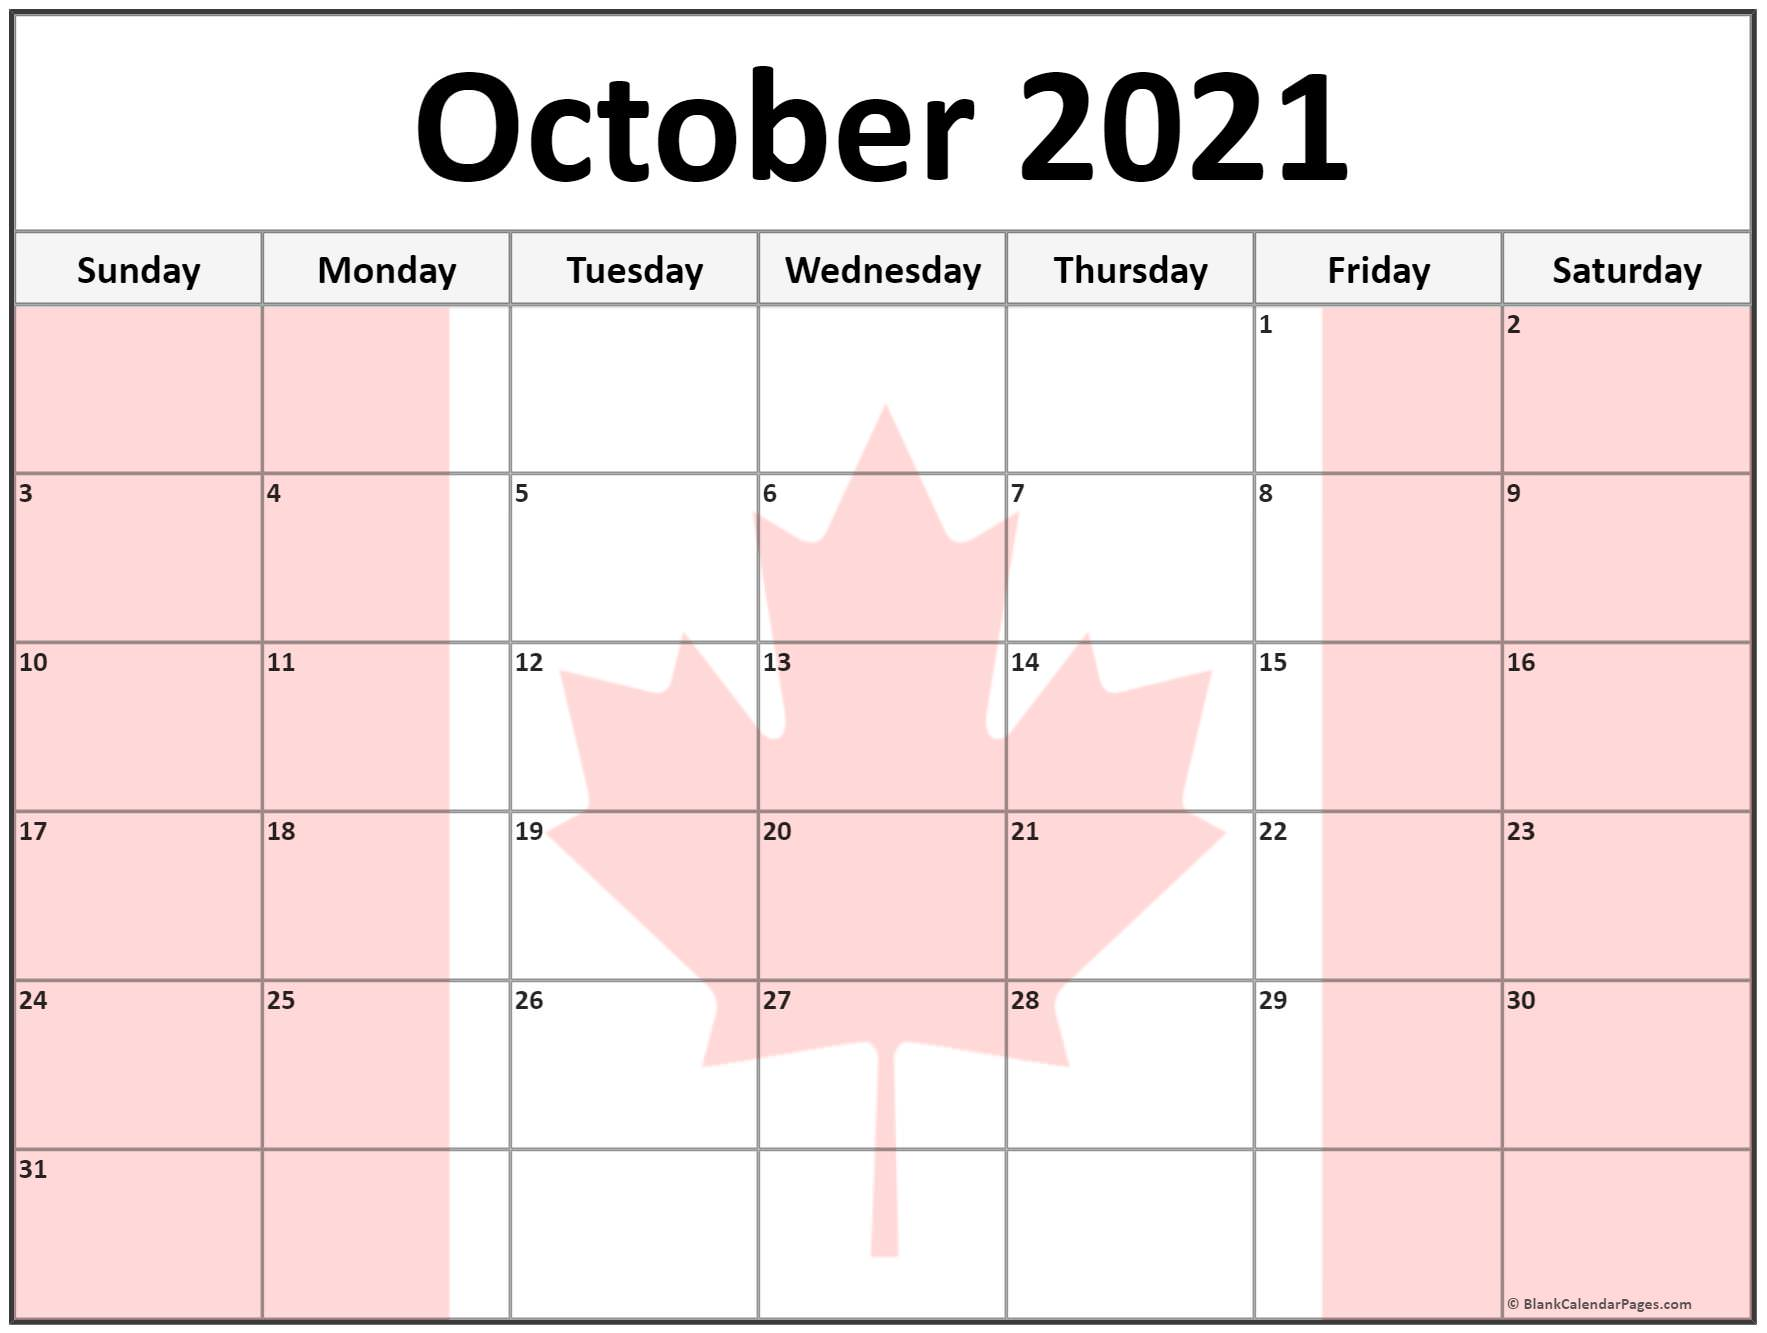 October 2019 Canada flag monthly calendar printout